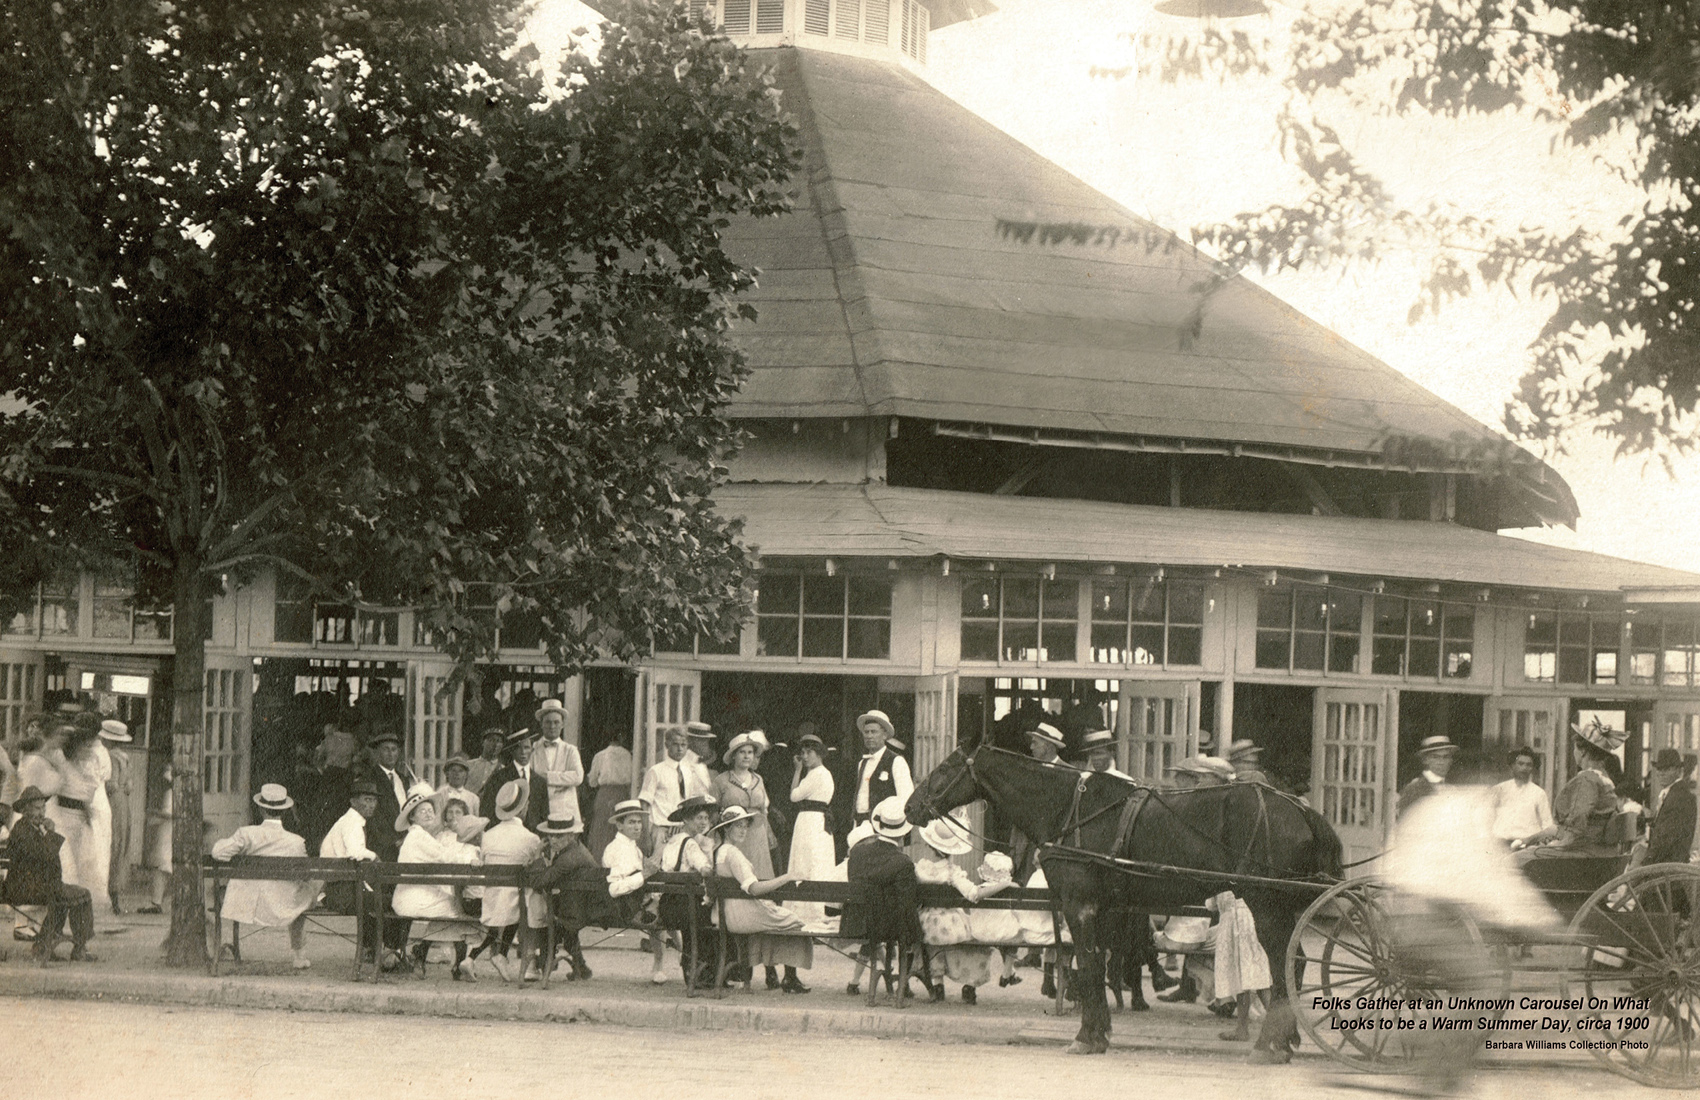 Circa-1900-busy-carousel-B-Williams-Archive-CNT-center-Aug-12